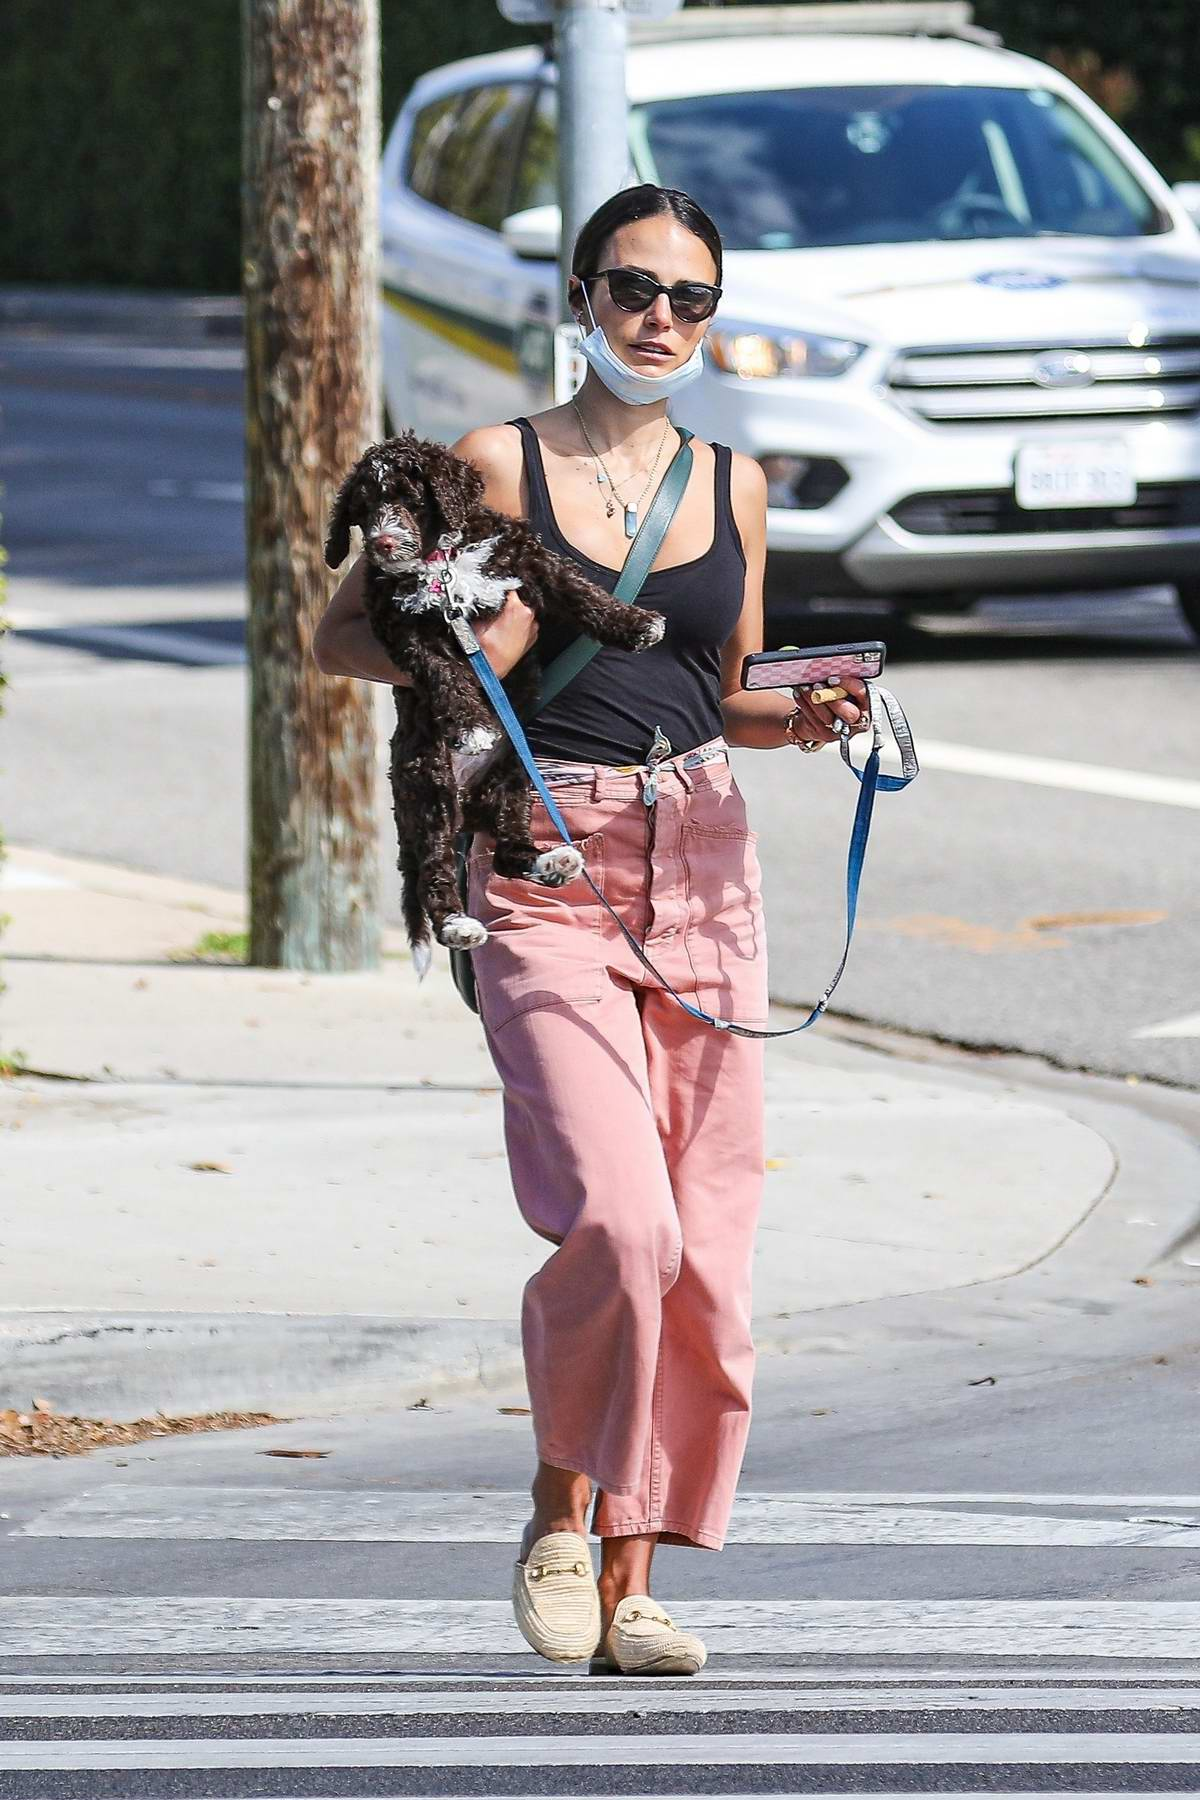 Jordana Brewster makes a coffee run with her new pup in Brentwood, California